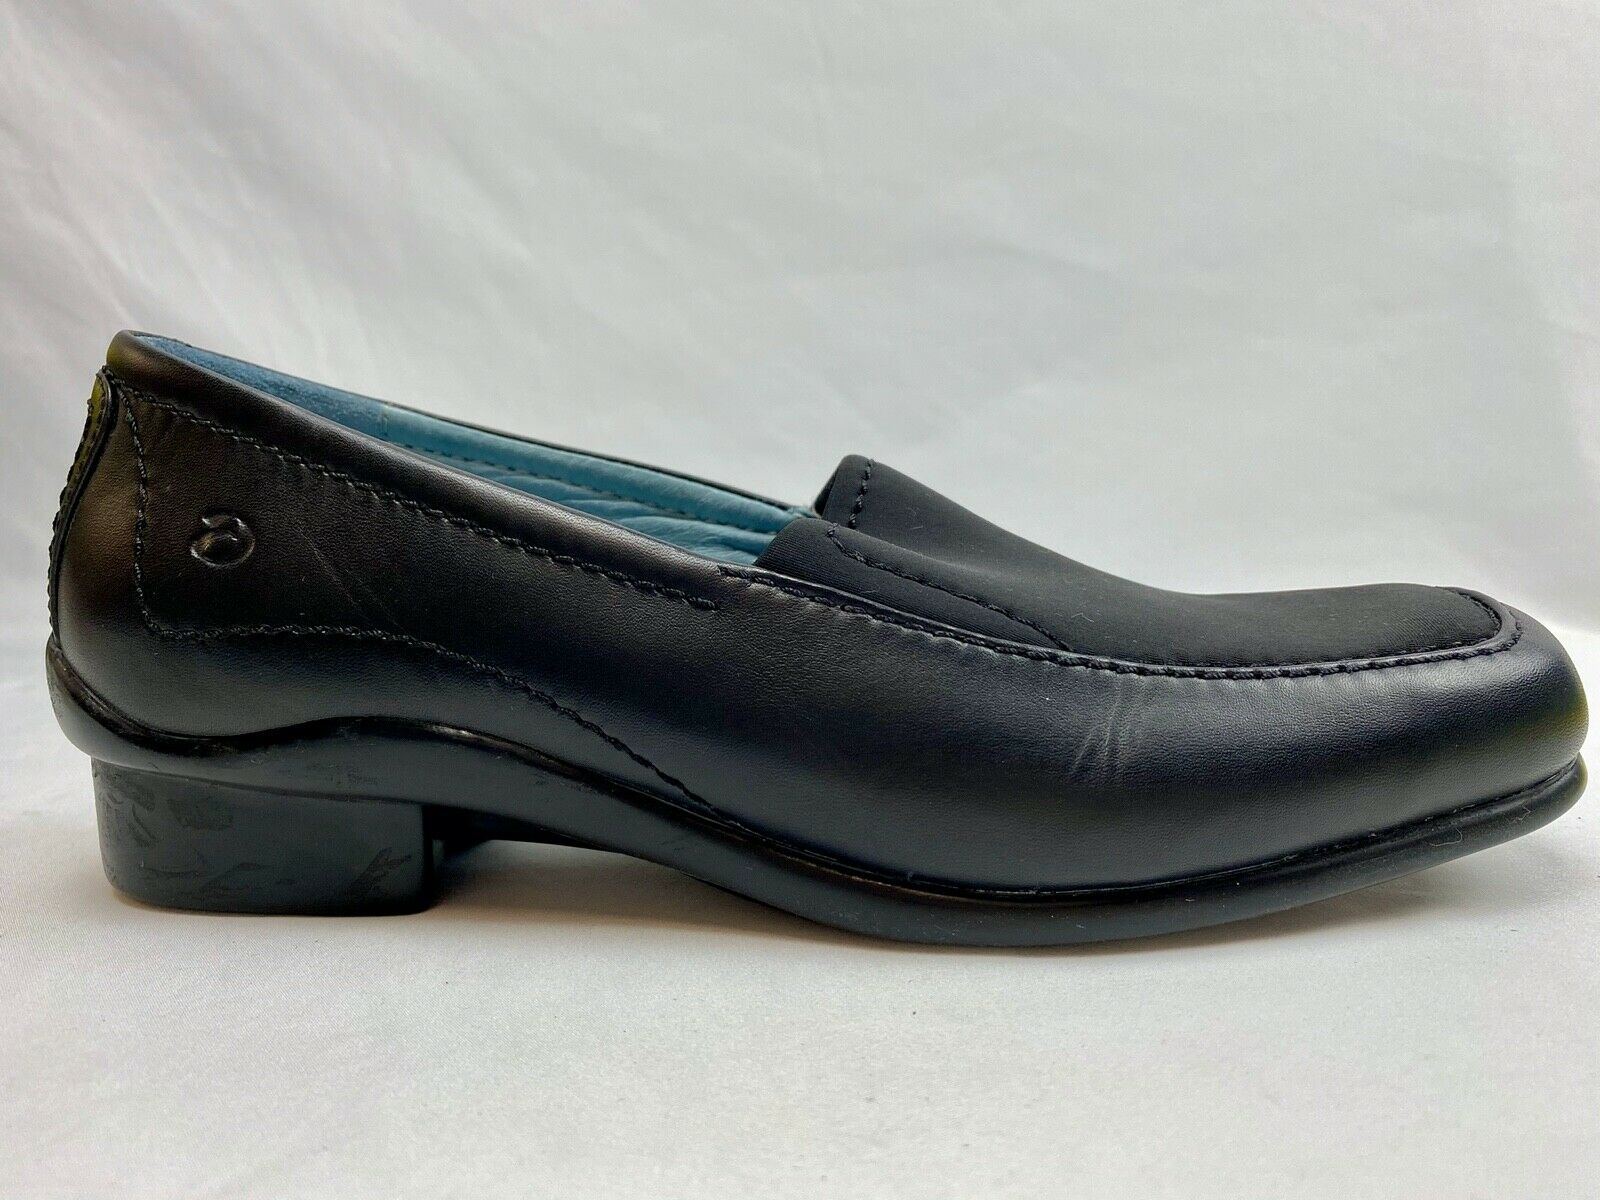 ARAVON Black Leather Stretch Loafer Comfort Shoes Women's 7B